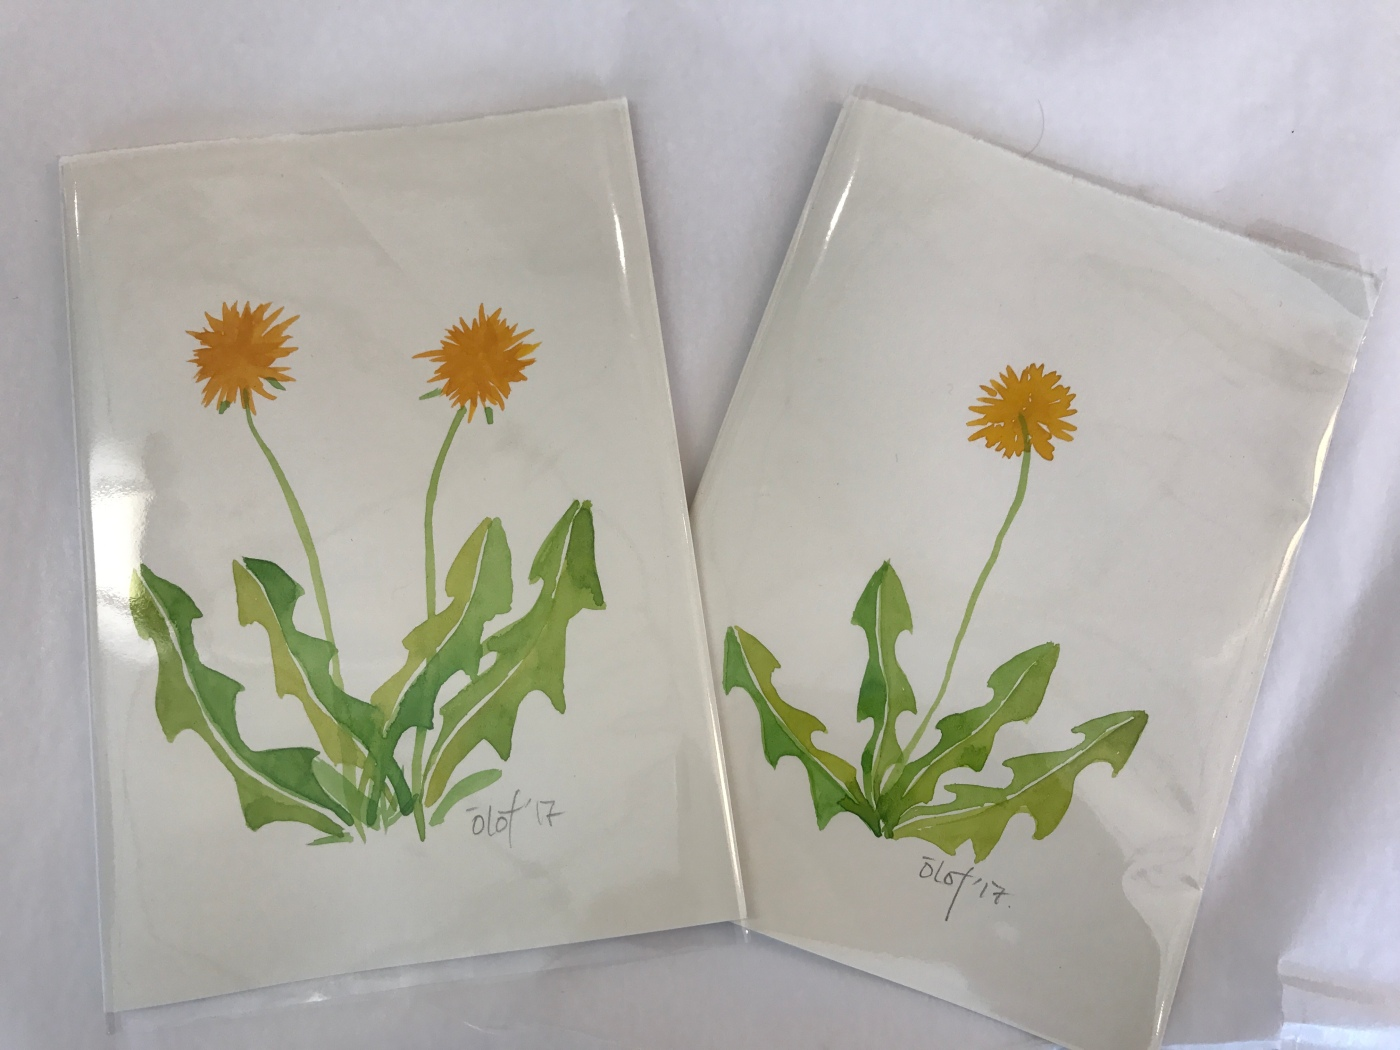 ​Kirsuberjatréð in Reykjavík, Iceland is a Shop that Will Cheer You Up Like Dandelions - Cards Designed by Local Artist Ólöf Erla Bjarnadóttir